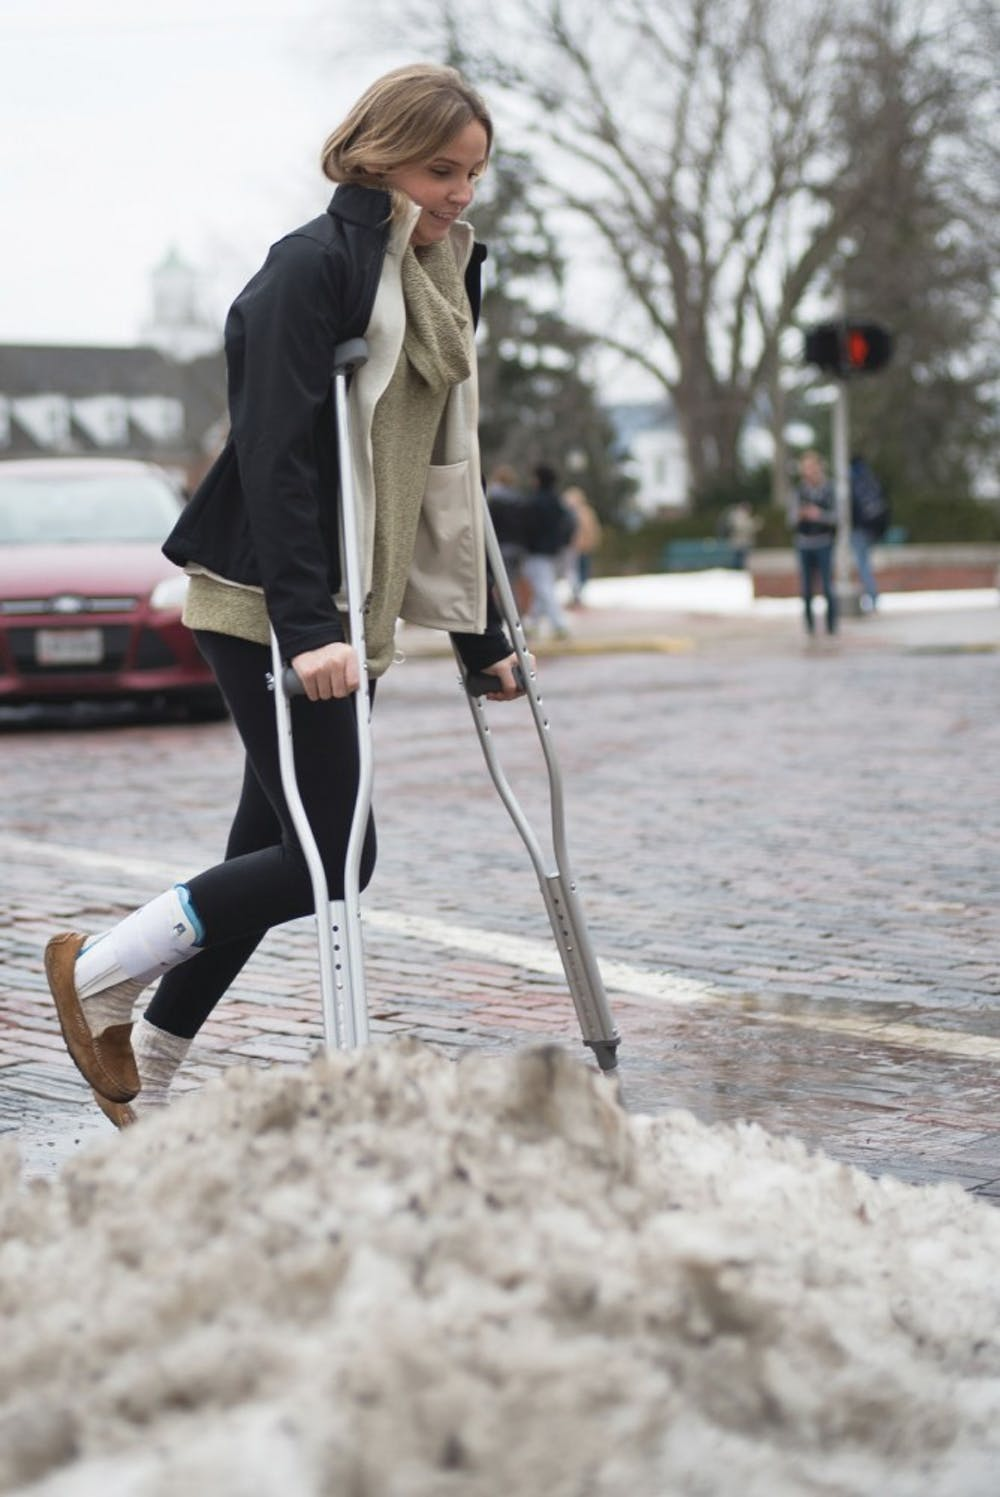 Ohio University offers some transportation and housing options to help injured students carve an accessible pathway